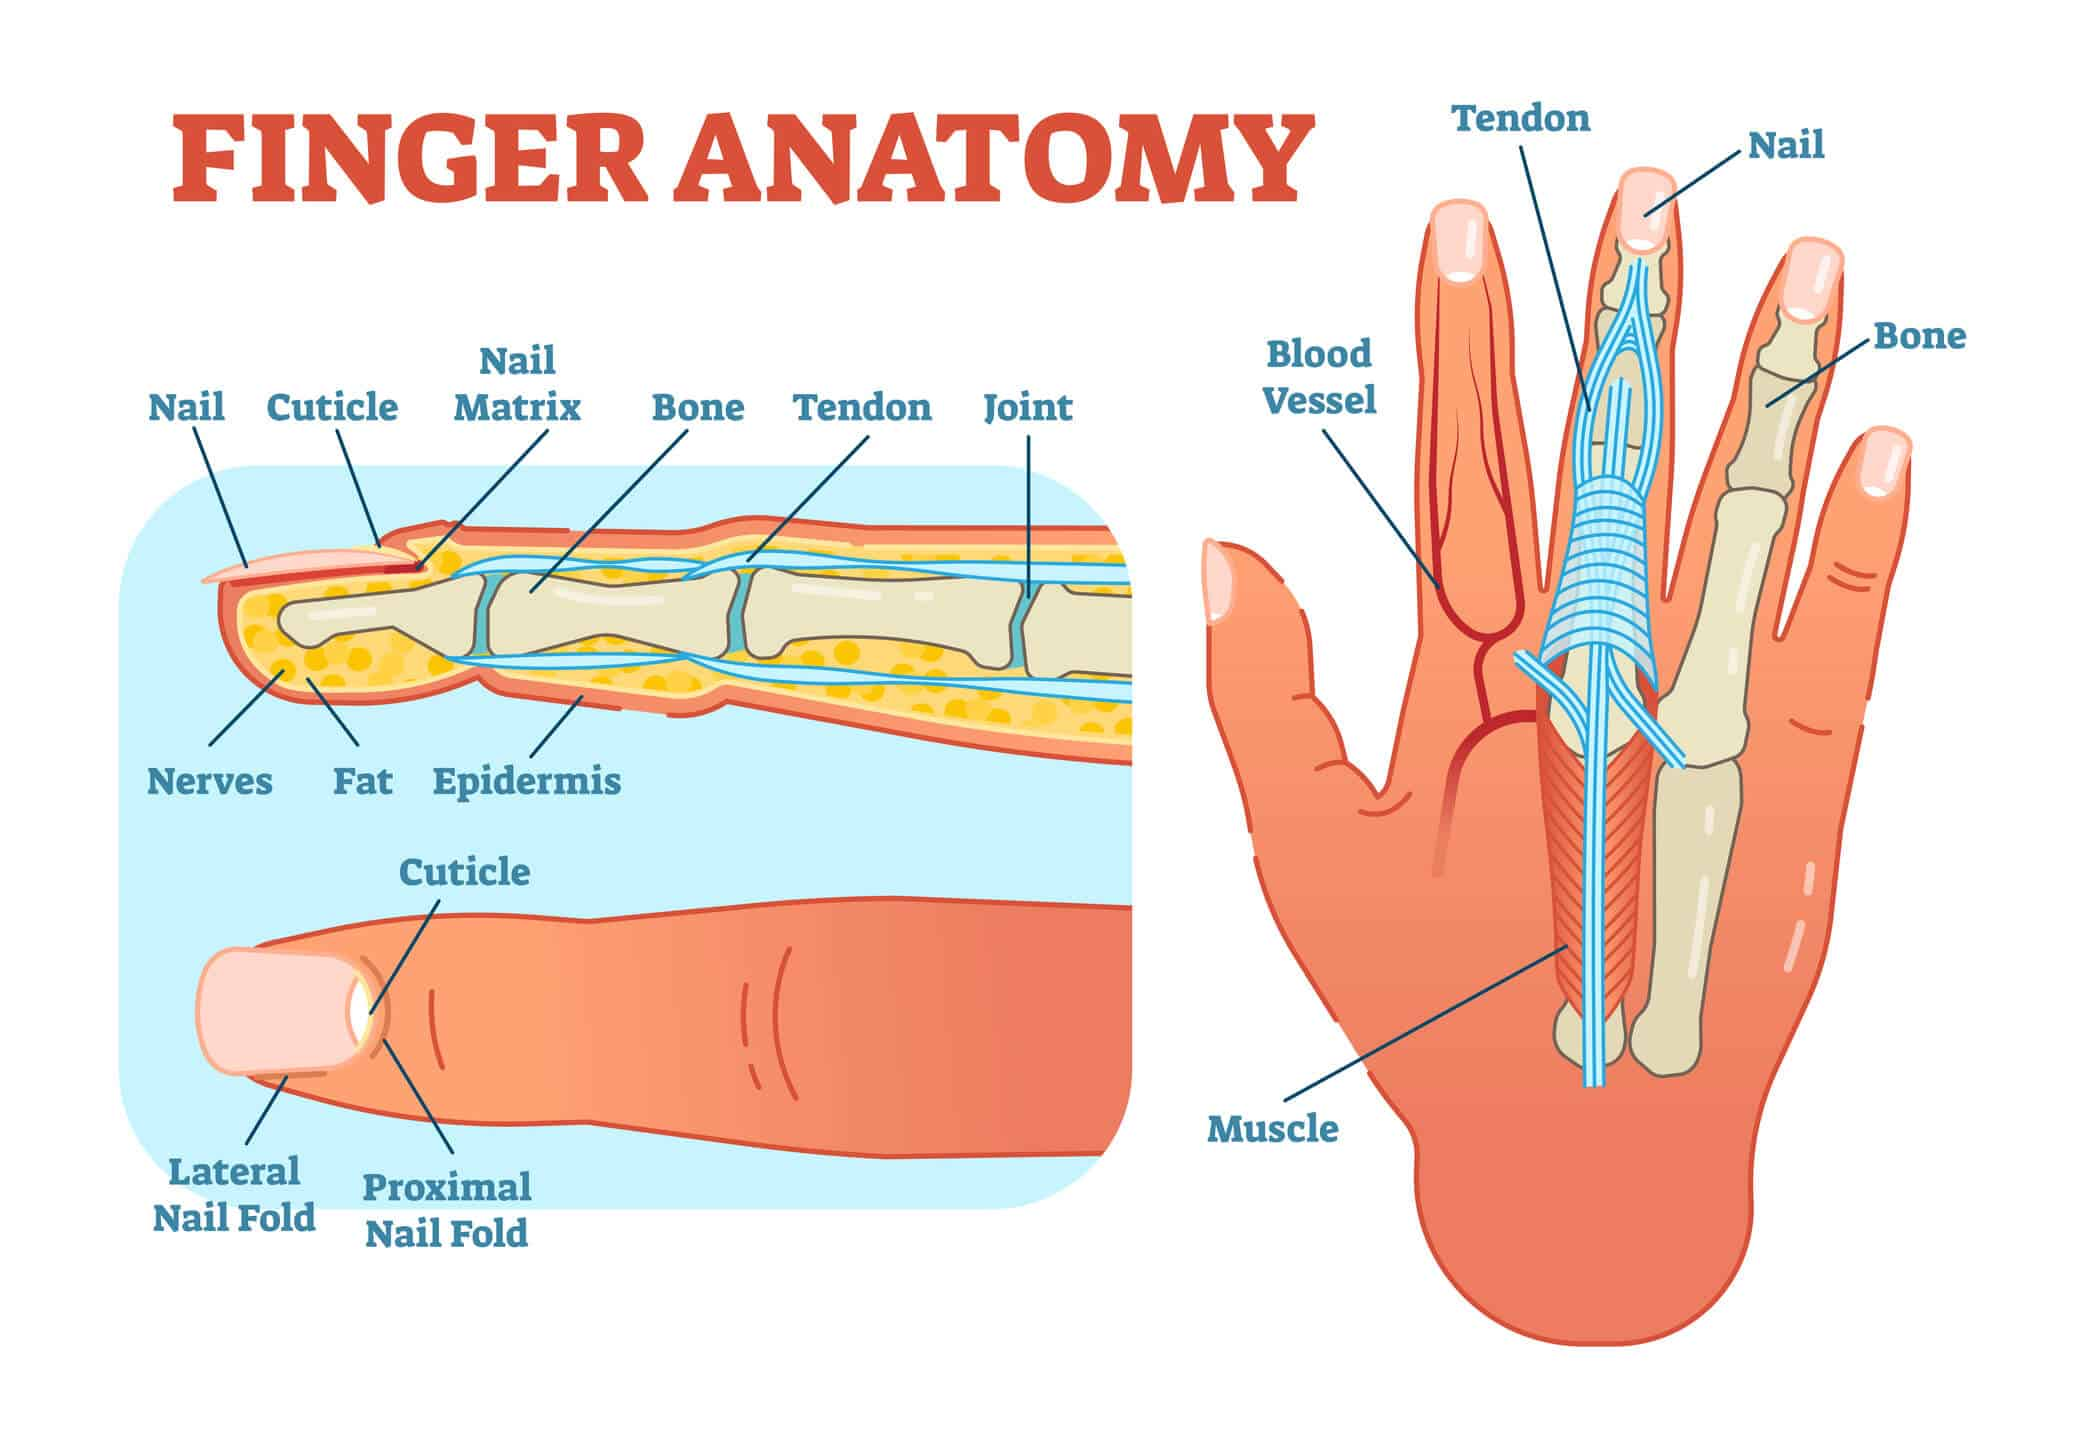 Image of the anatomy of the finger